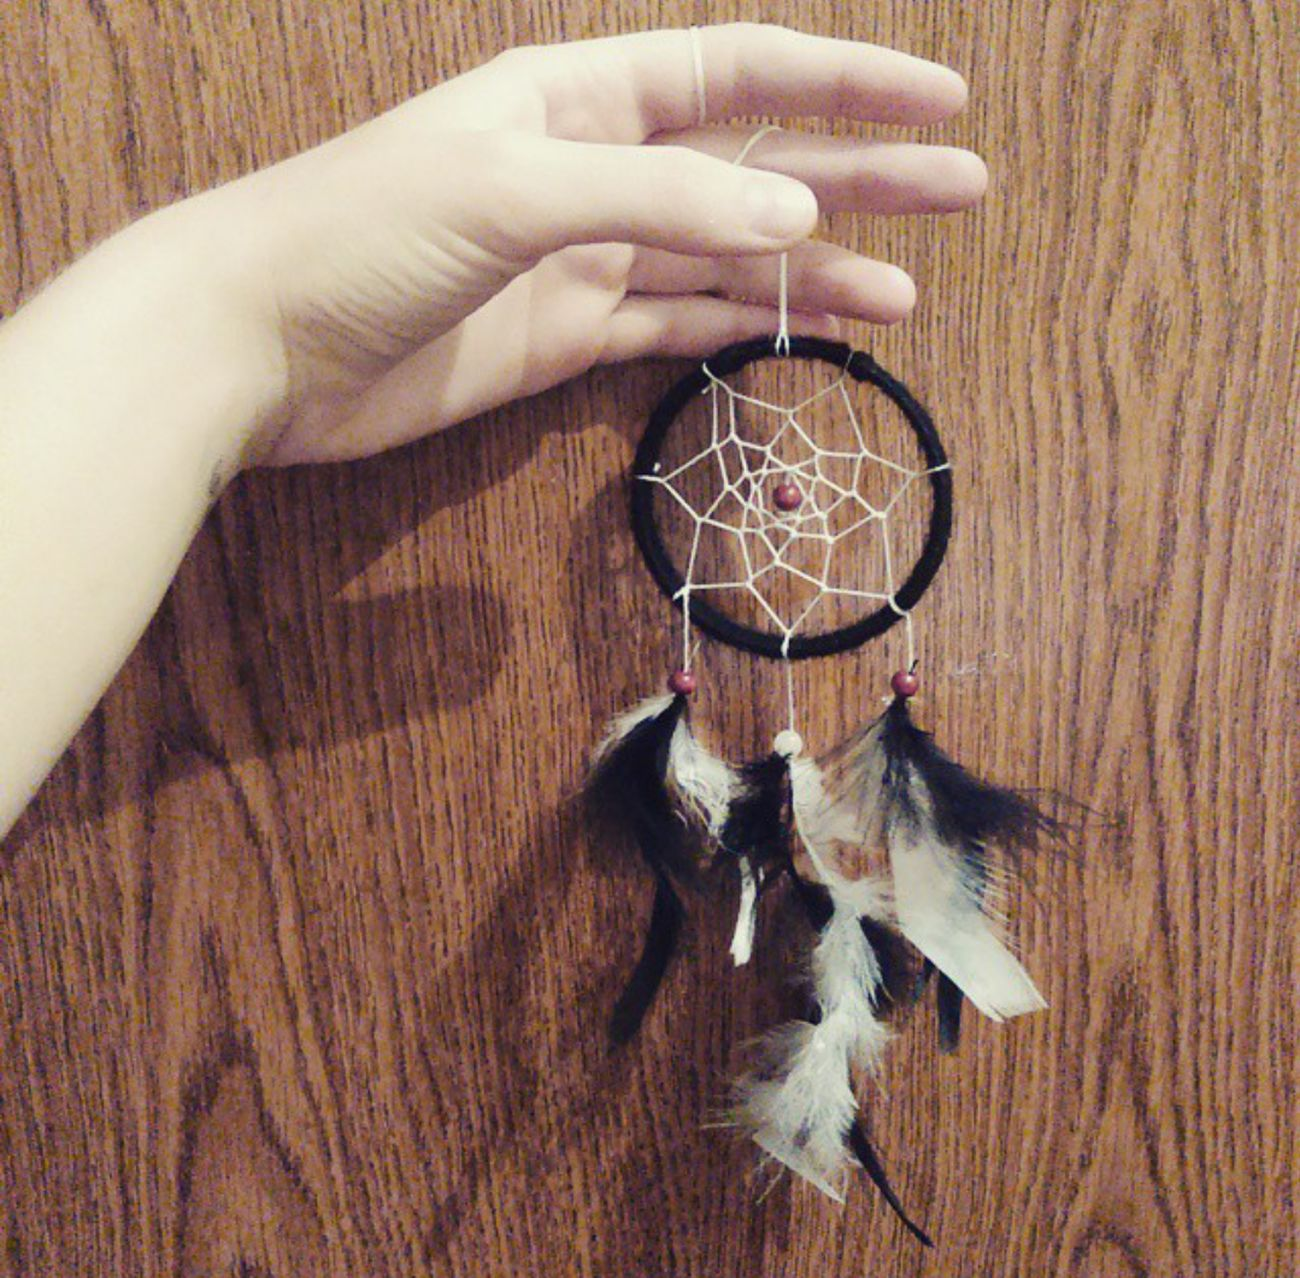 I made my first lil dreamcatcheeer! :3 Dreamcatcher Art Hobby Fun Energy Dream Dreams Peace Preciousstones Made By Me Handmade Love Perfect Pretty Beautiful Fashion Beauty Happy Me